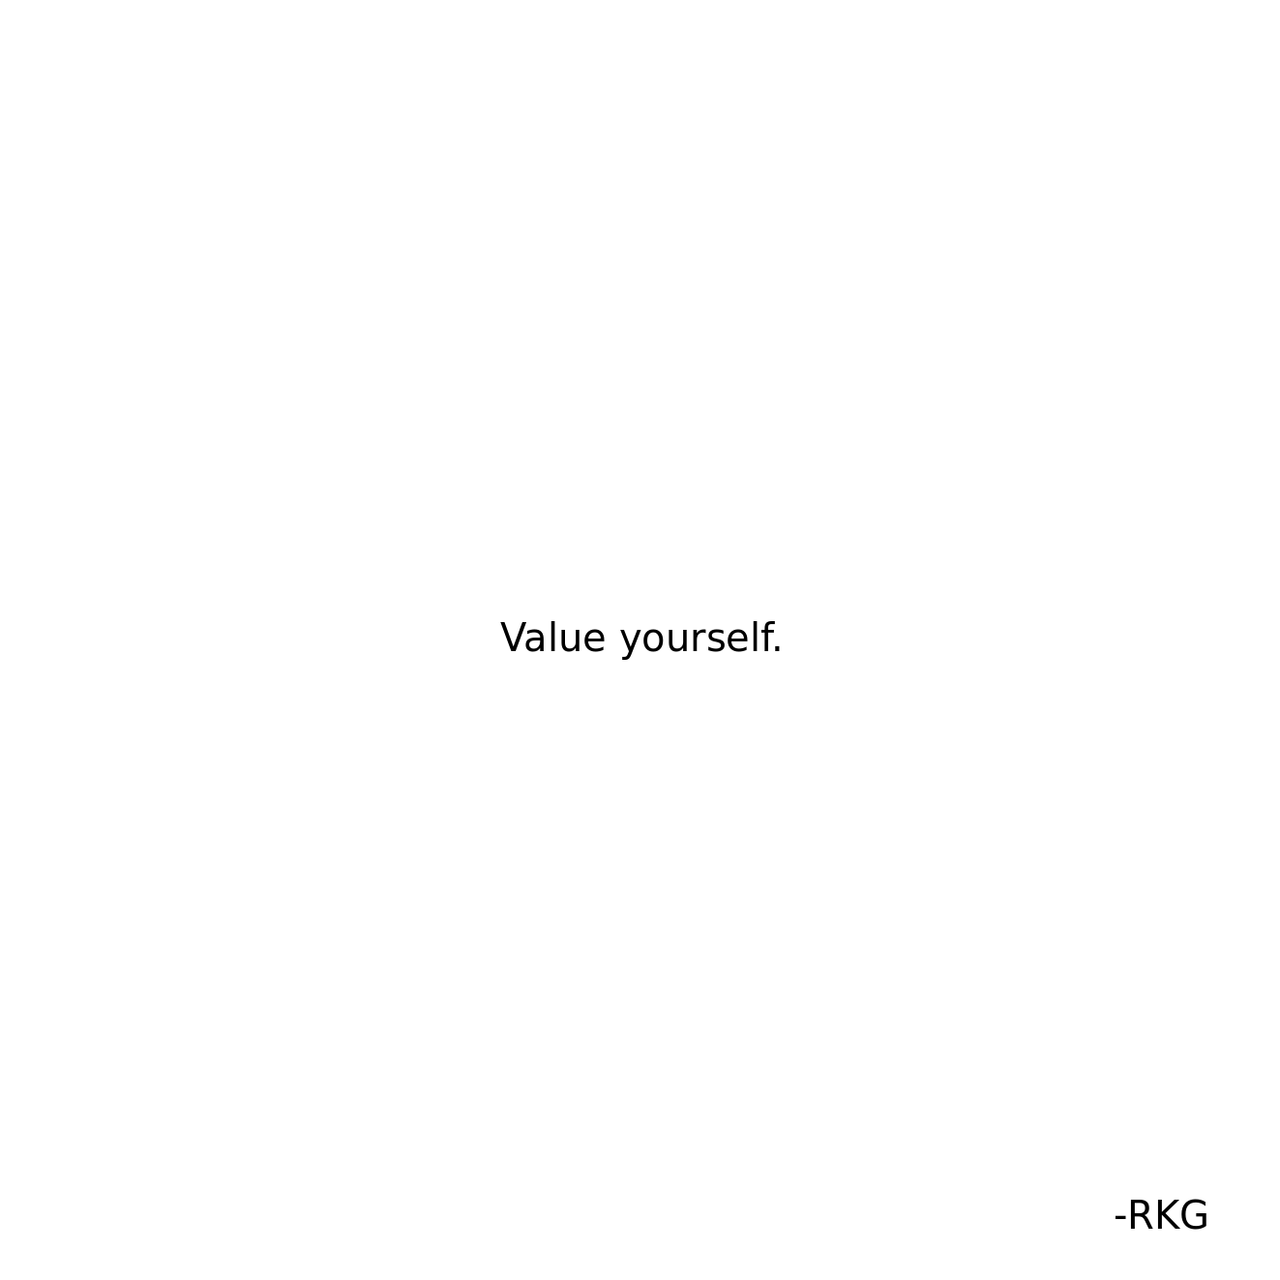 If You Don T Value Yourself Trust Me Nobody On This Earth Would Value You Not Even The One You Think Loves You The Most The original image was first posted online by twitter user @mohamedkamoul on june 8th, 2014, though the tweet was subsequently removed from his feed shortly after it began to take off on the microblogging platform. if you don t value yourself trust me